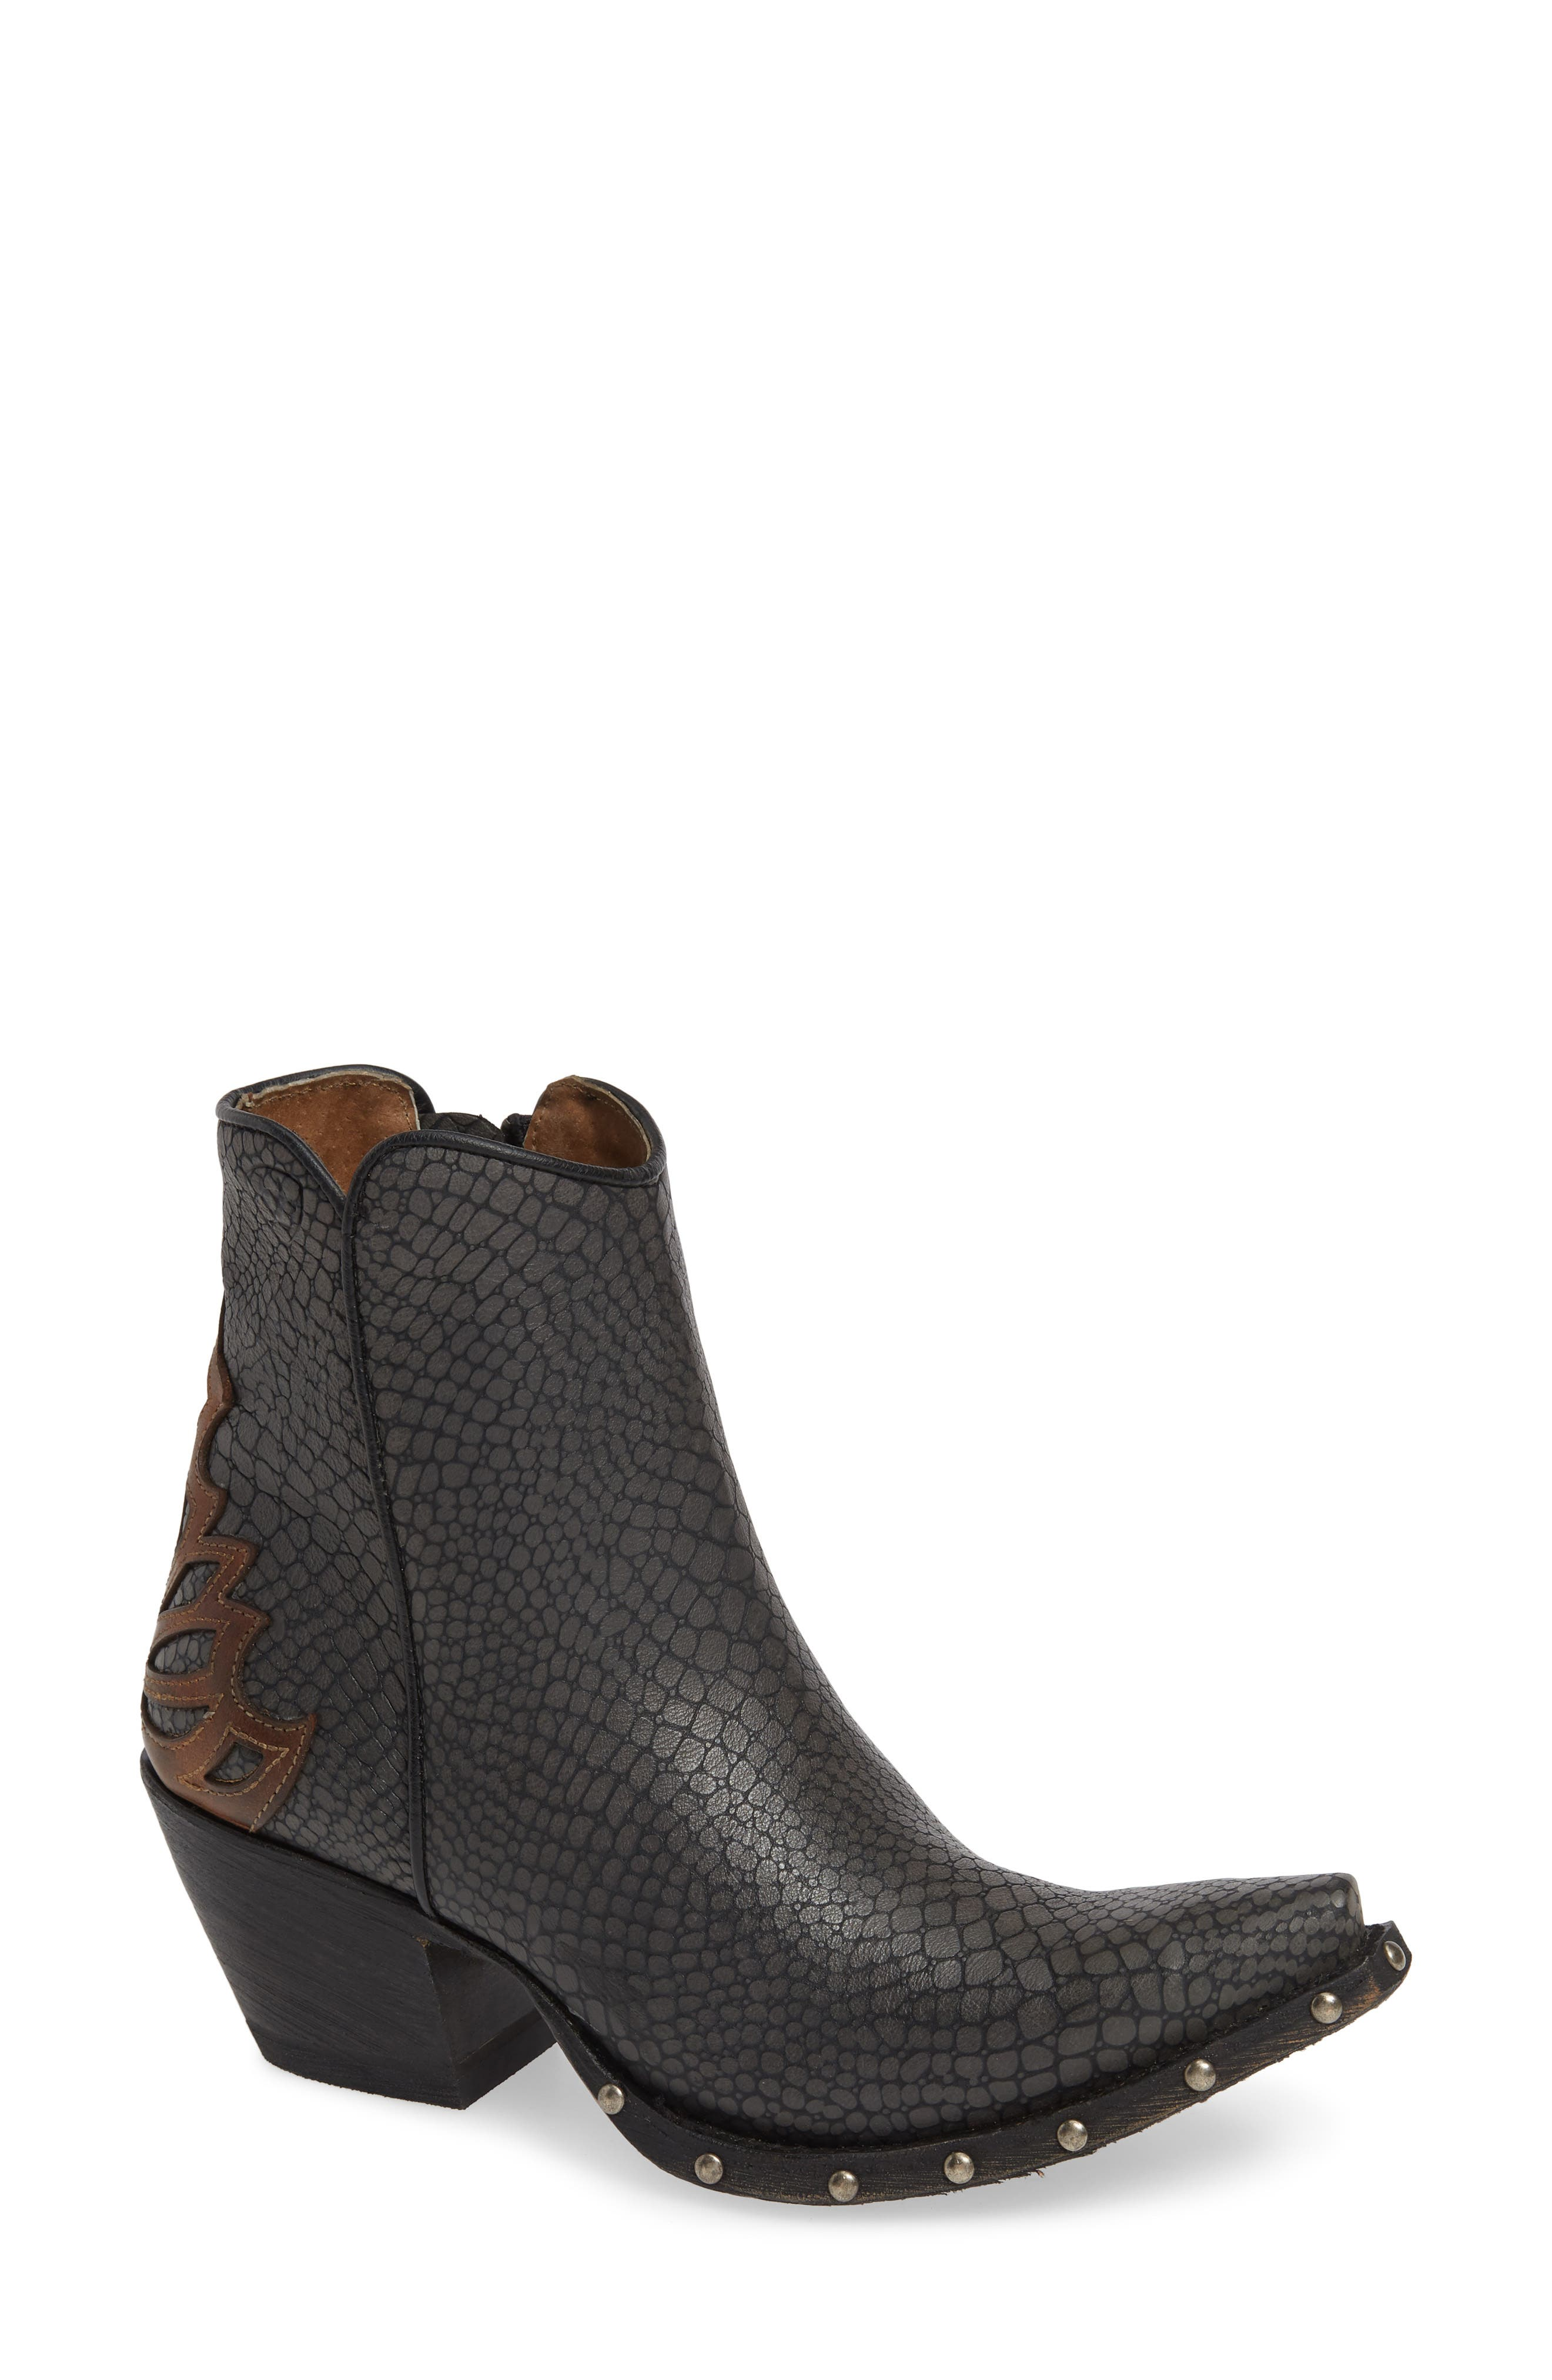 ARIAT, Fenix Western Bootie, Main thumbnail 1, color, CHIC GREY CRACKLED TAN LEATHER